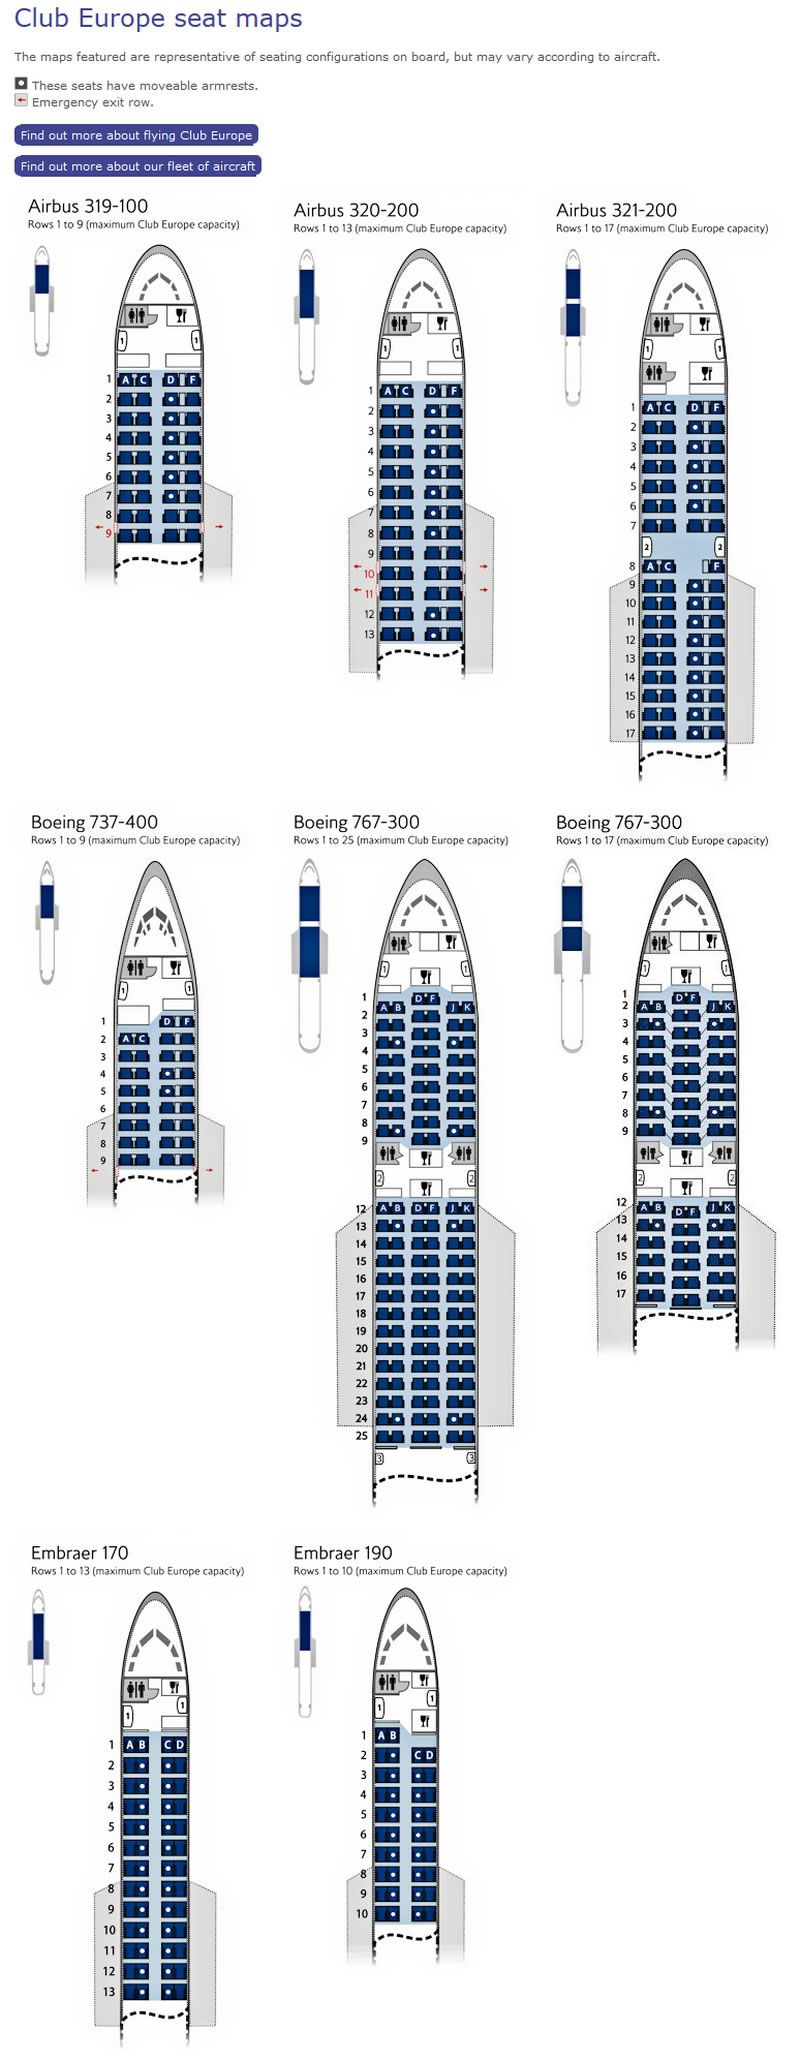 BRITISH AIRWAYS CLUB EUROPE SEATING CHARTS